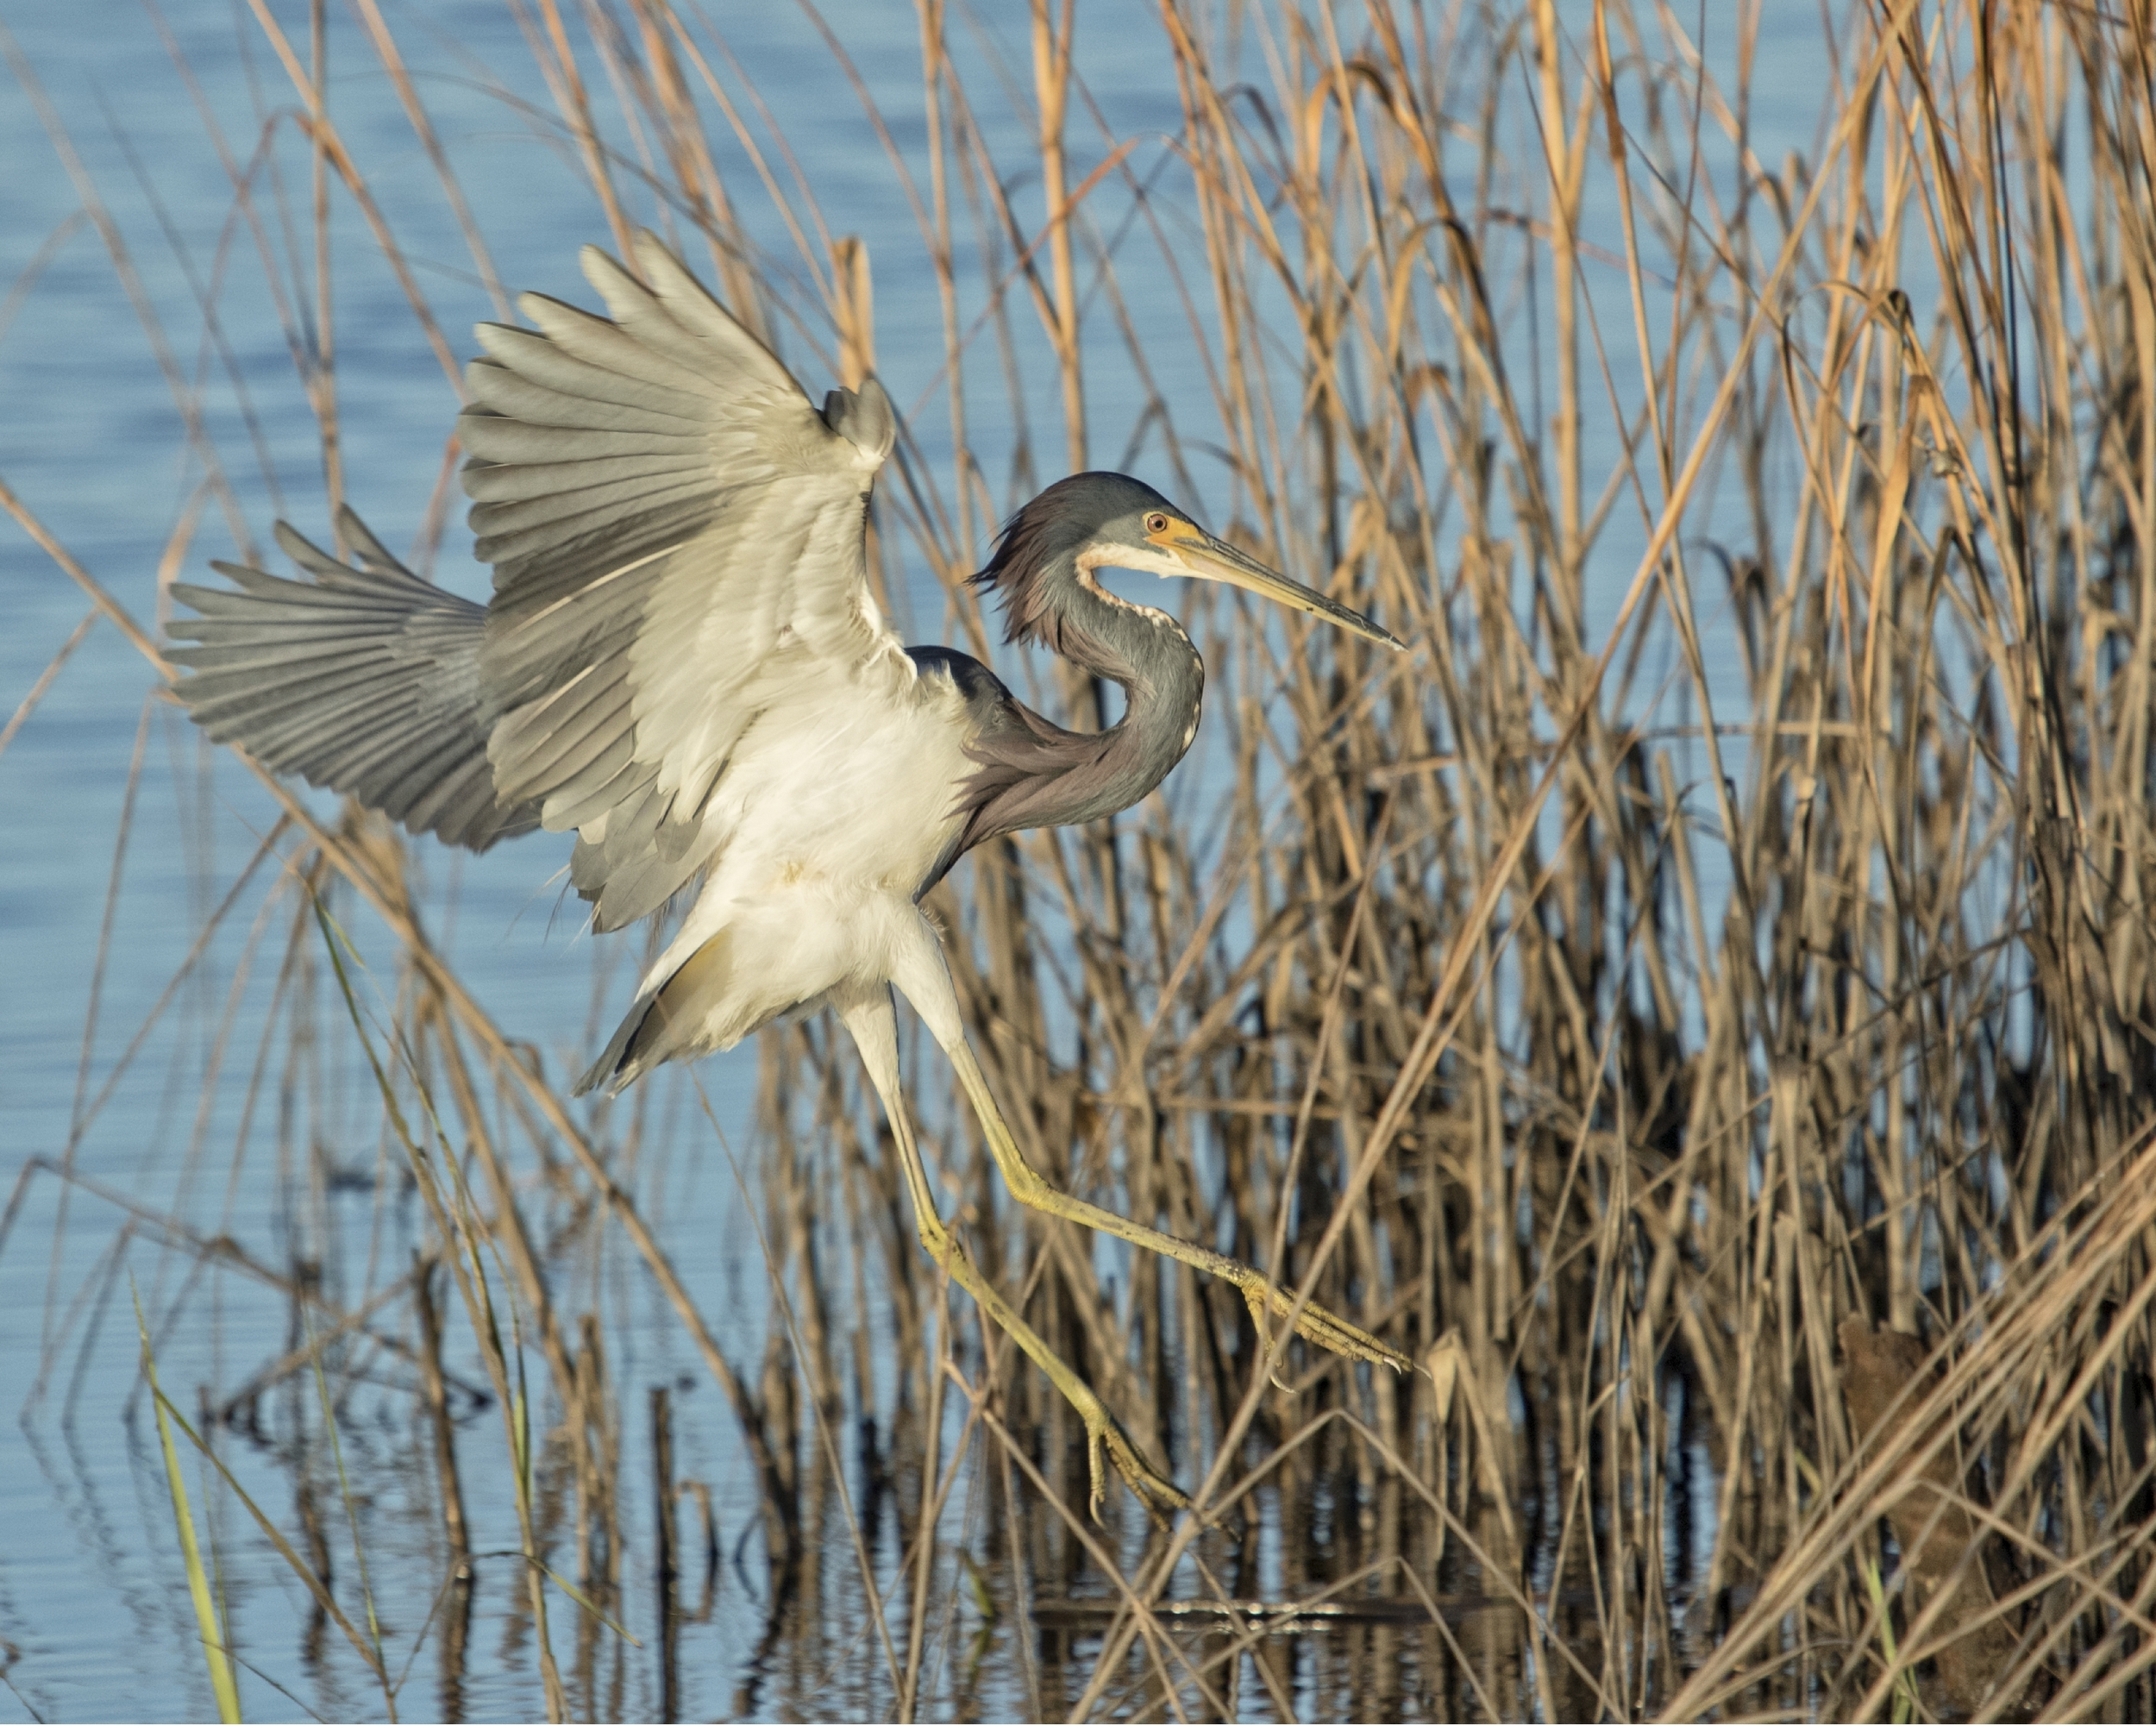 I find Solace in capturing the motion of flight and the detail of each feathered wing...